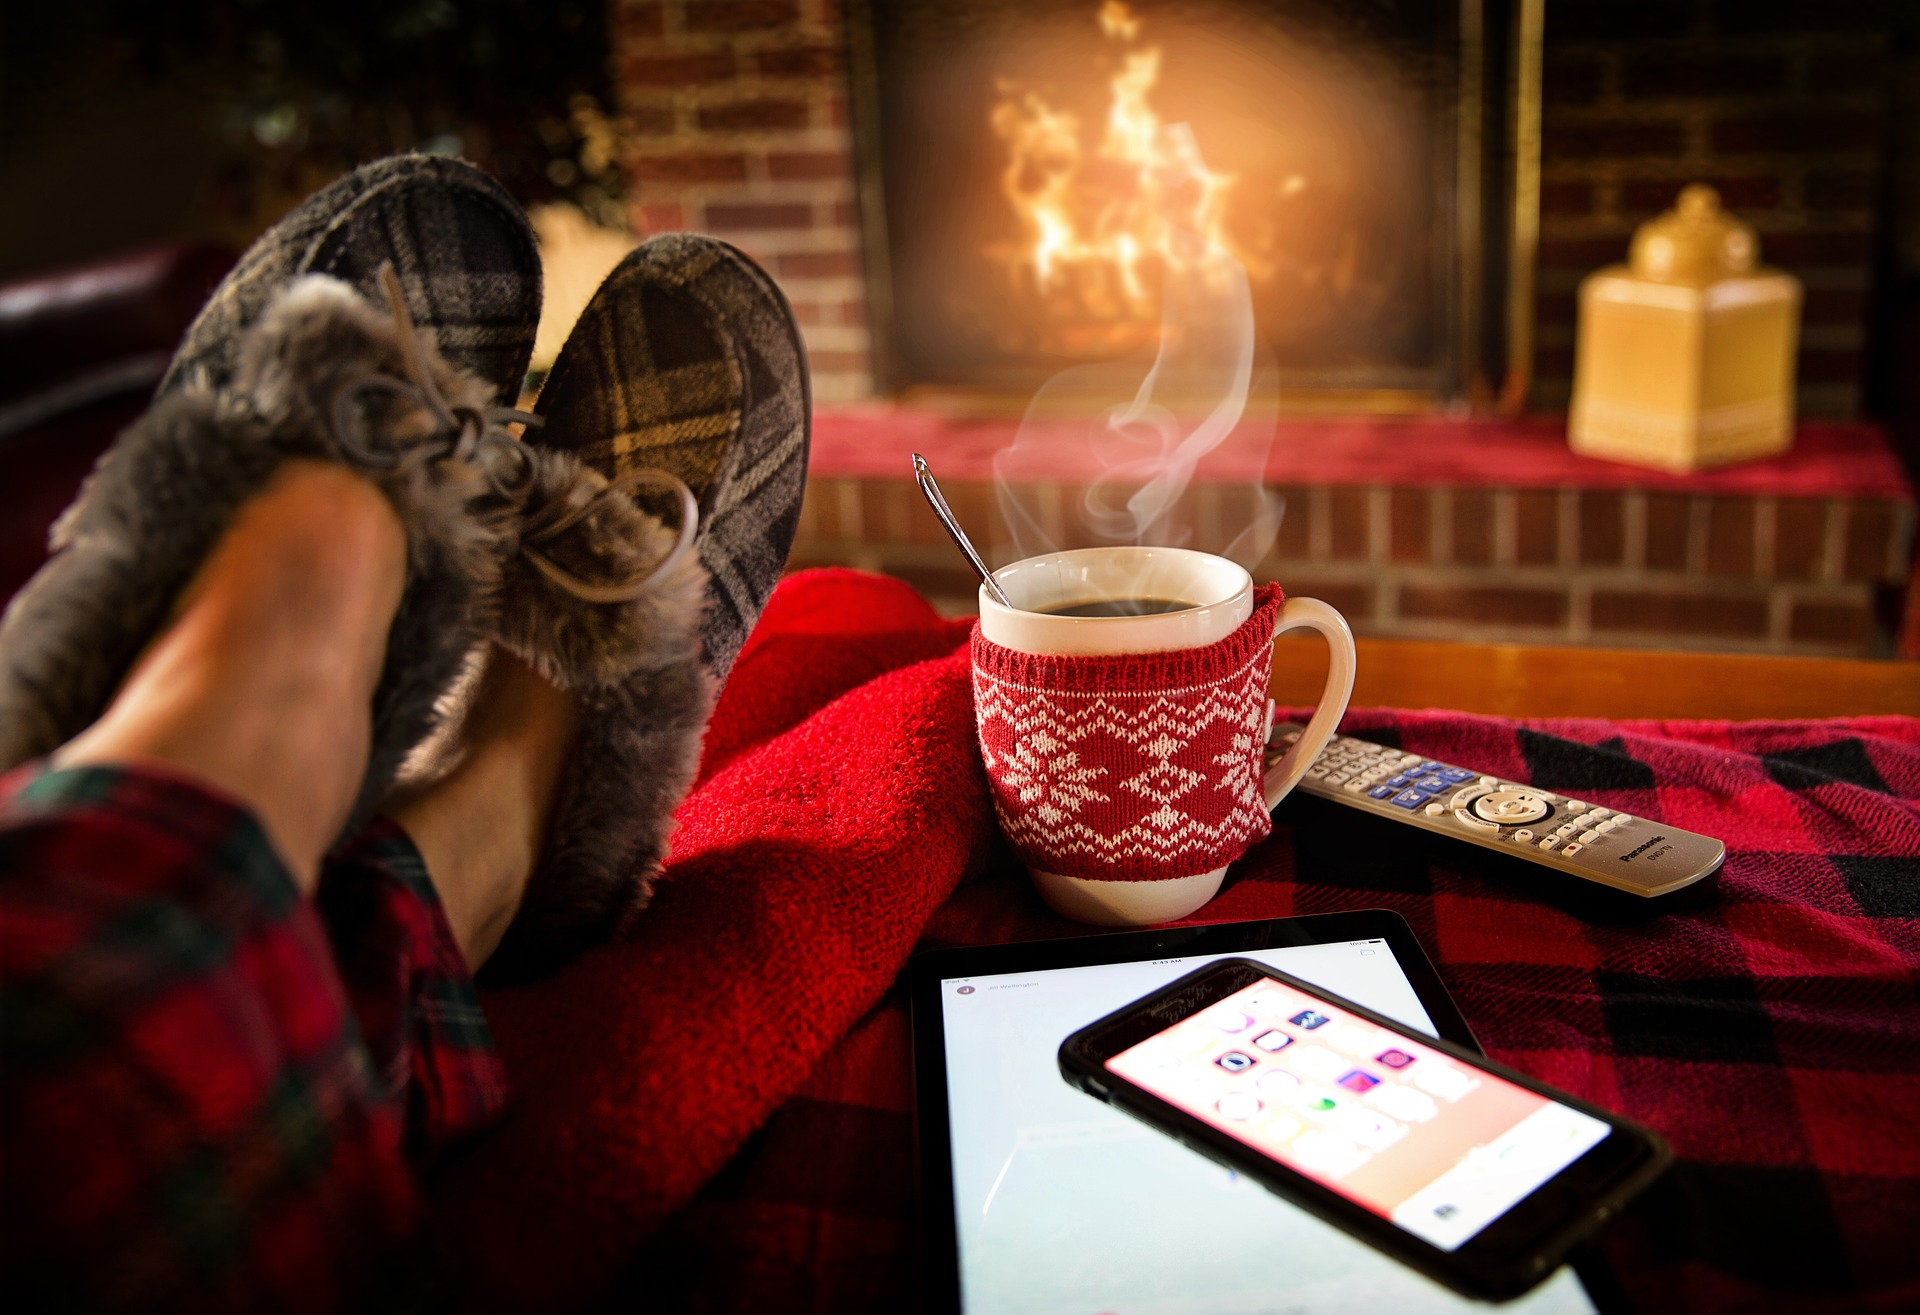 Feet in slippers put up next to a hot drink, phone, tv remote, and in front of a fireplace with a fire